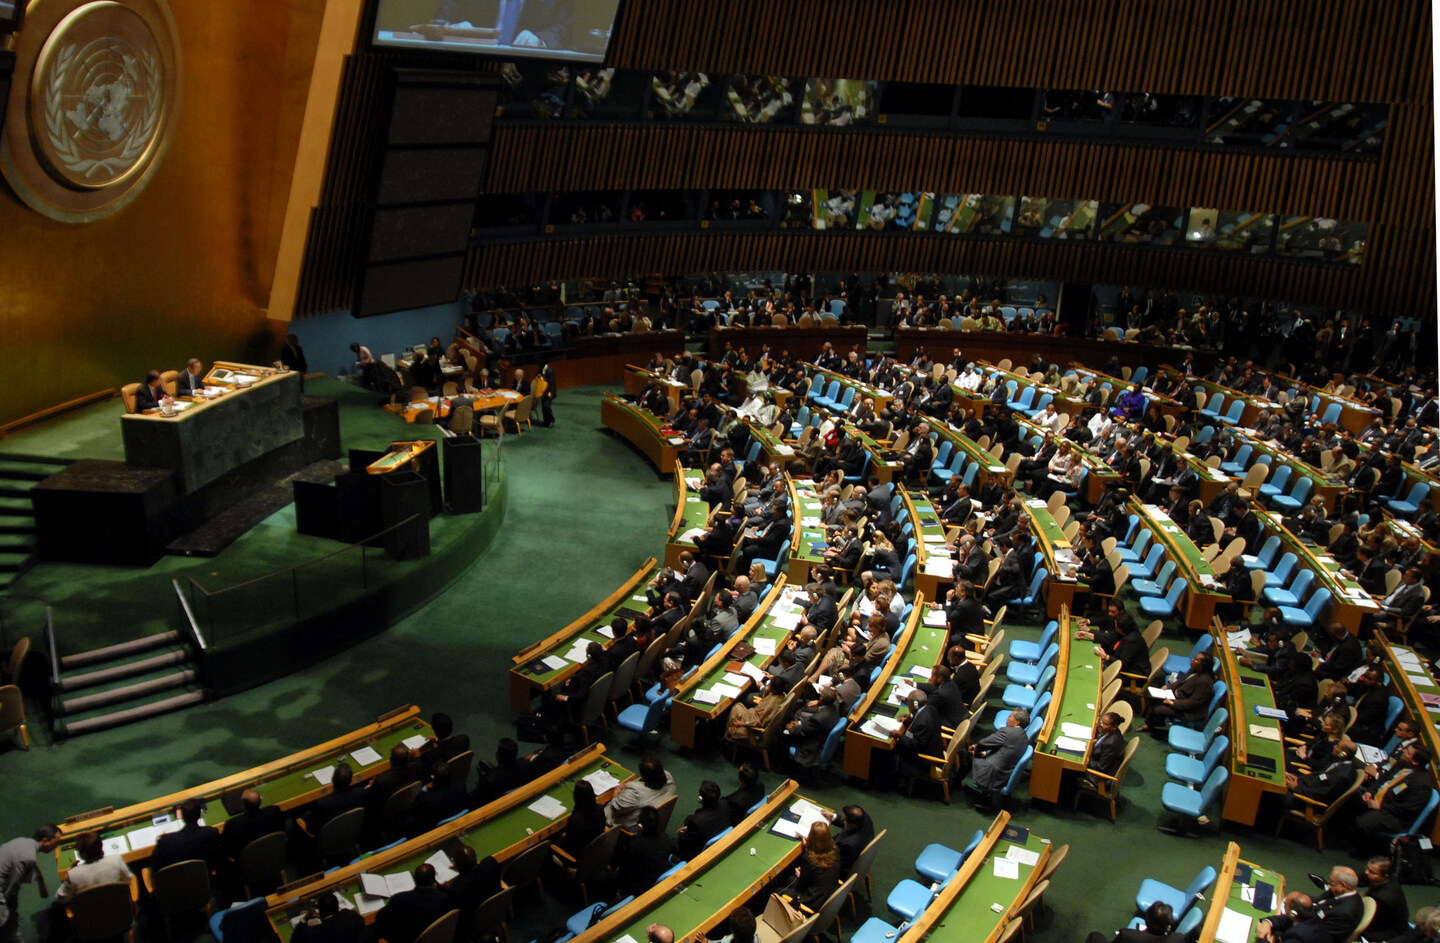 Un meeting on environment at general assembly